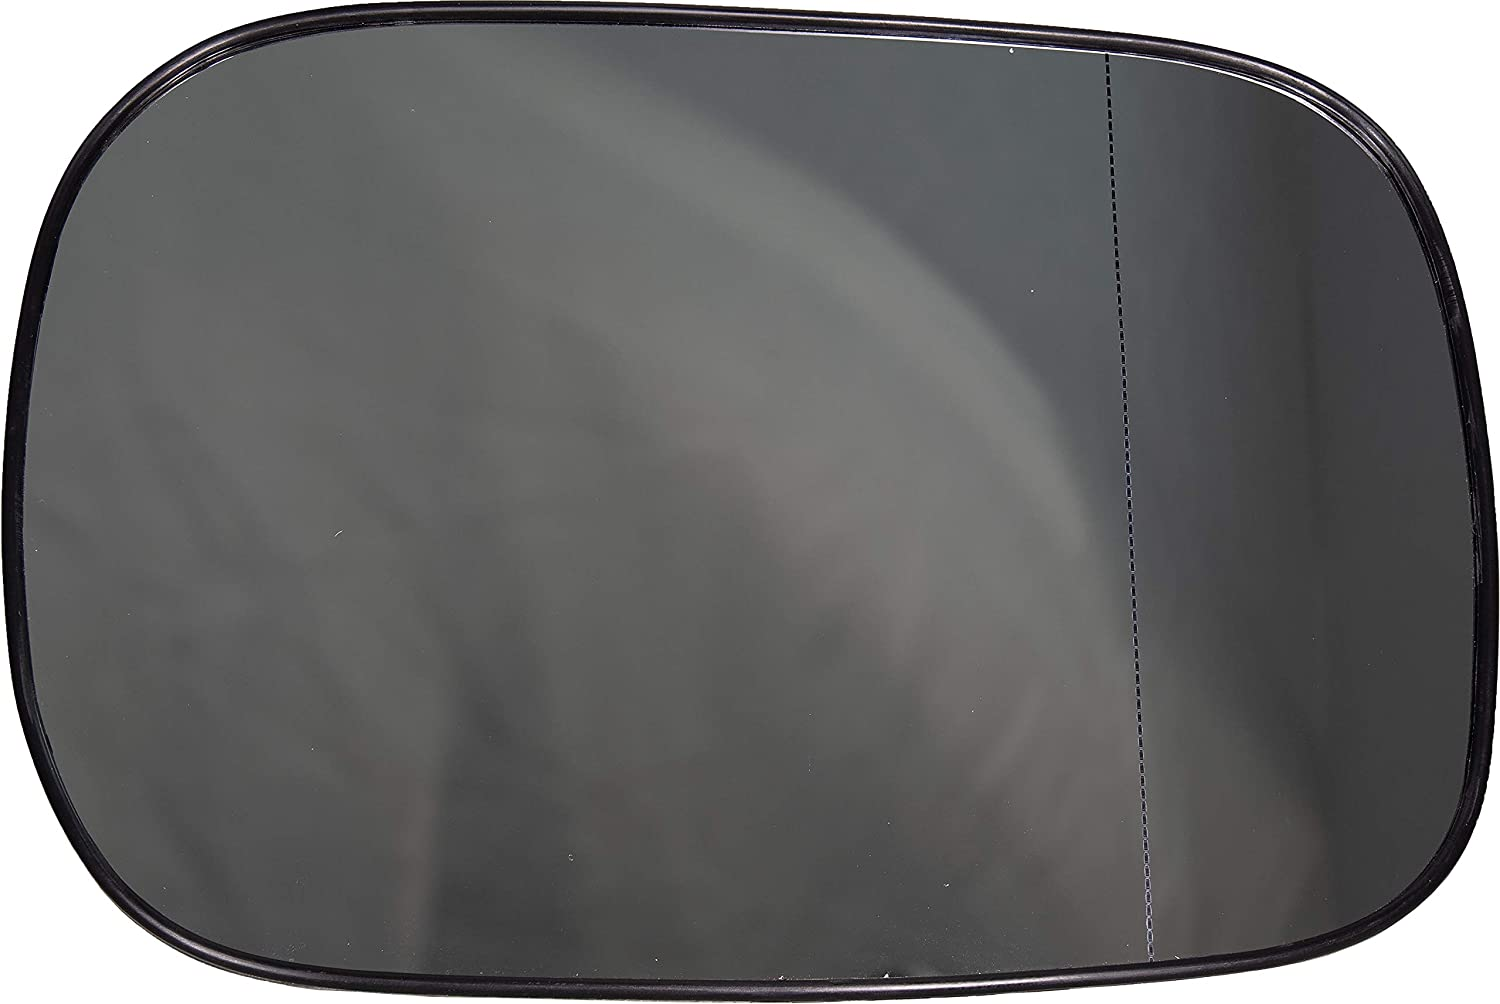 Driver-Side 2001-2002 Volvo V70 // 2003-2006 Volvo XC70 Various Submodels Check Description and Fitment Chart APDTY 67935 Replacement Left Side View Mirror Glass Fits Replaces 8650148